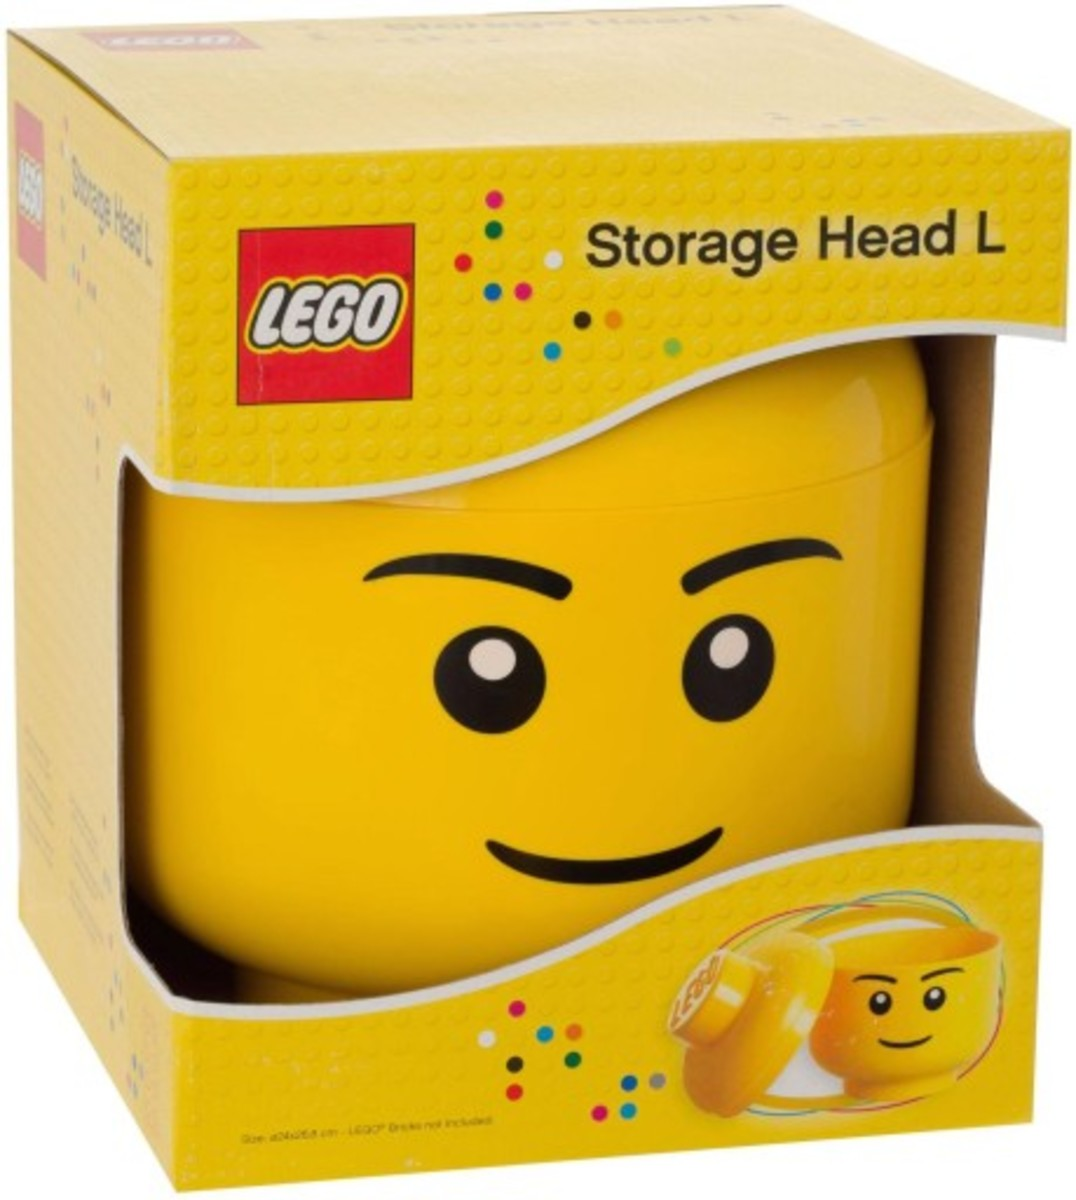 LEGO Storage Head Large BOY 儲物